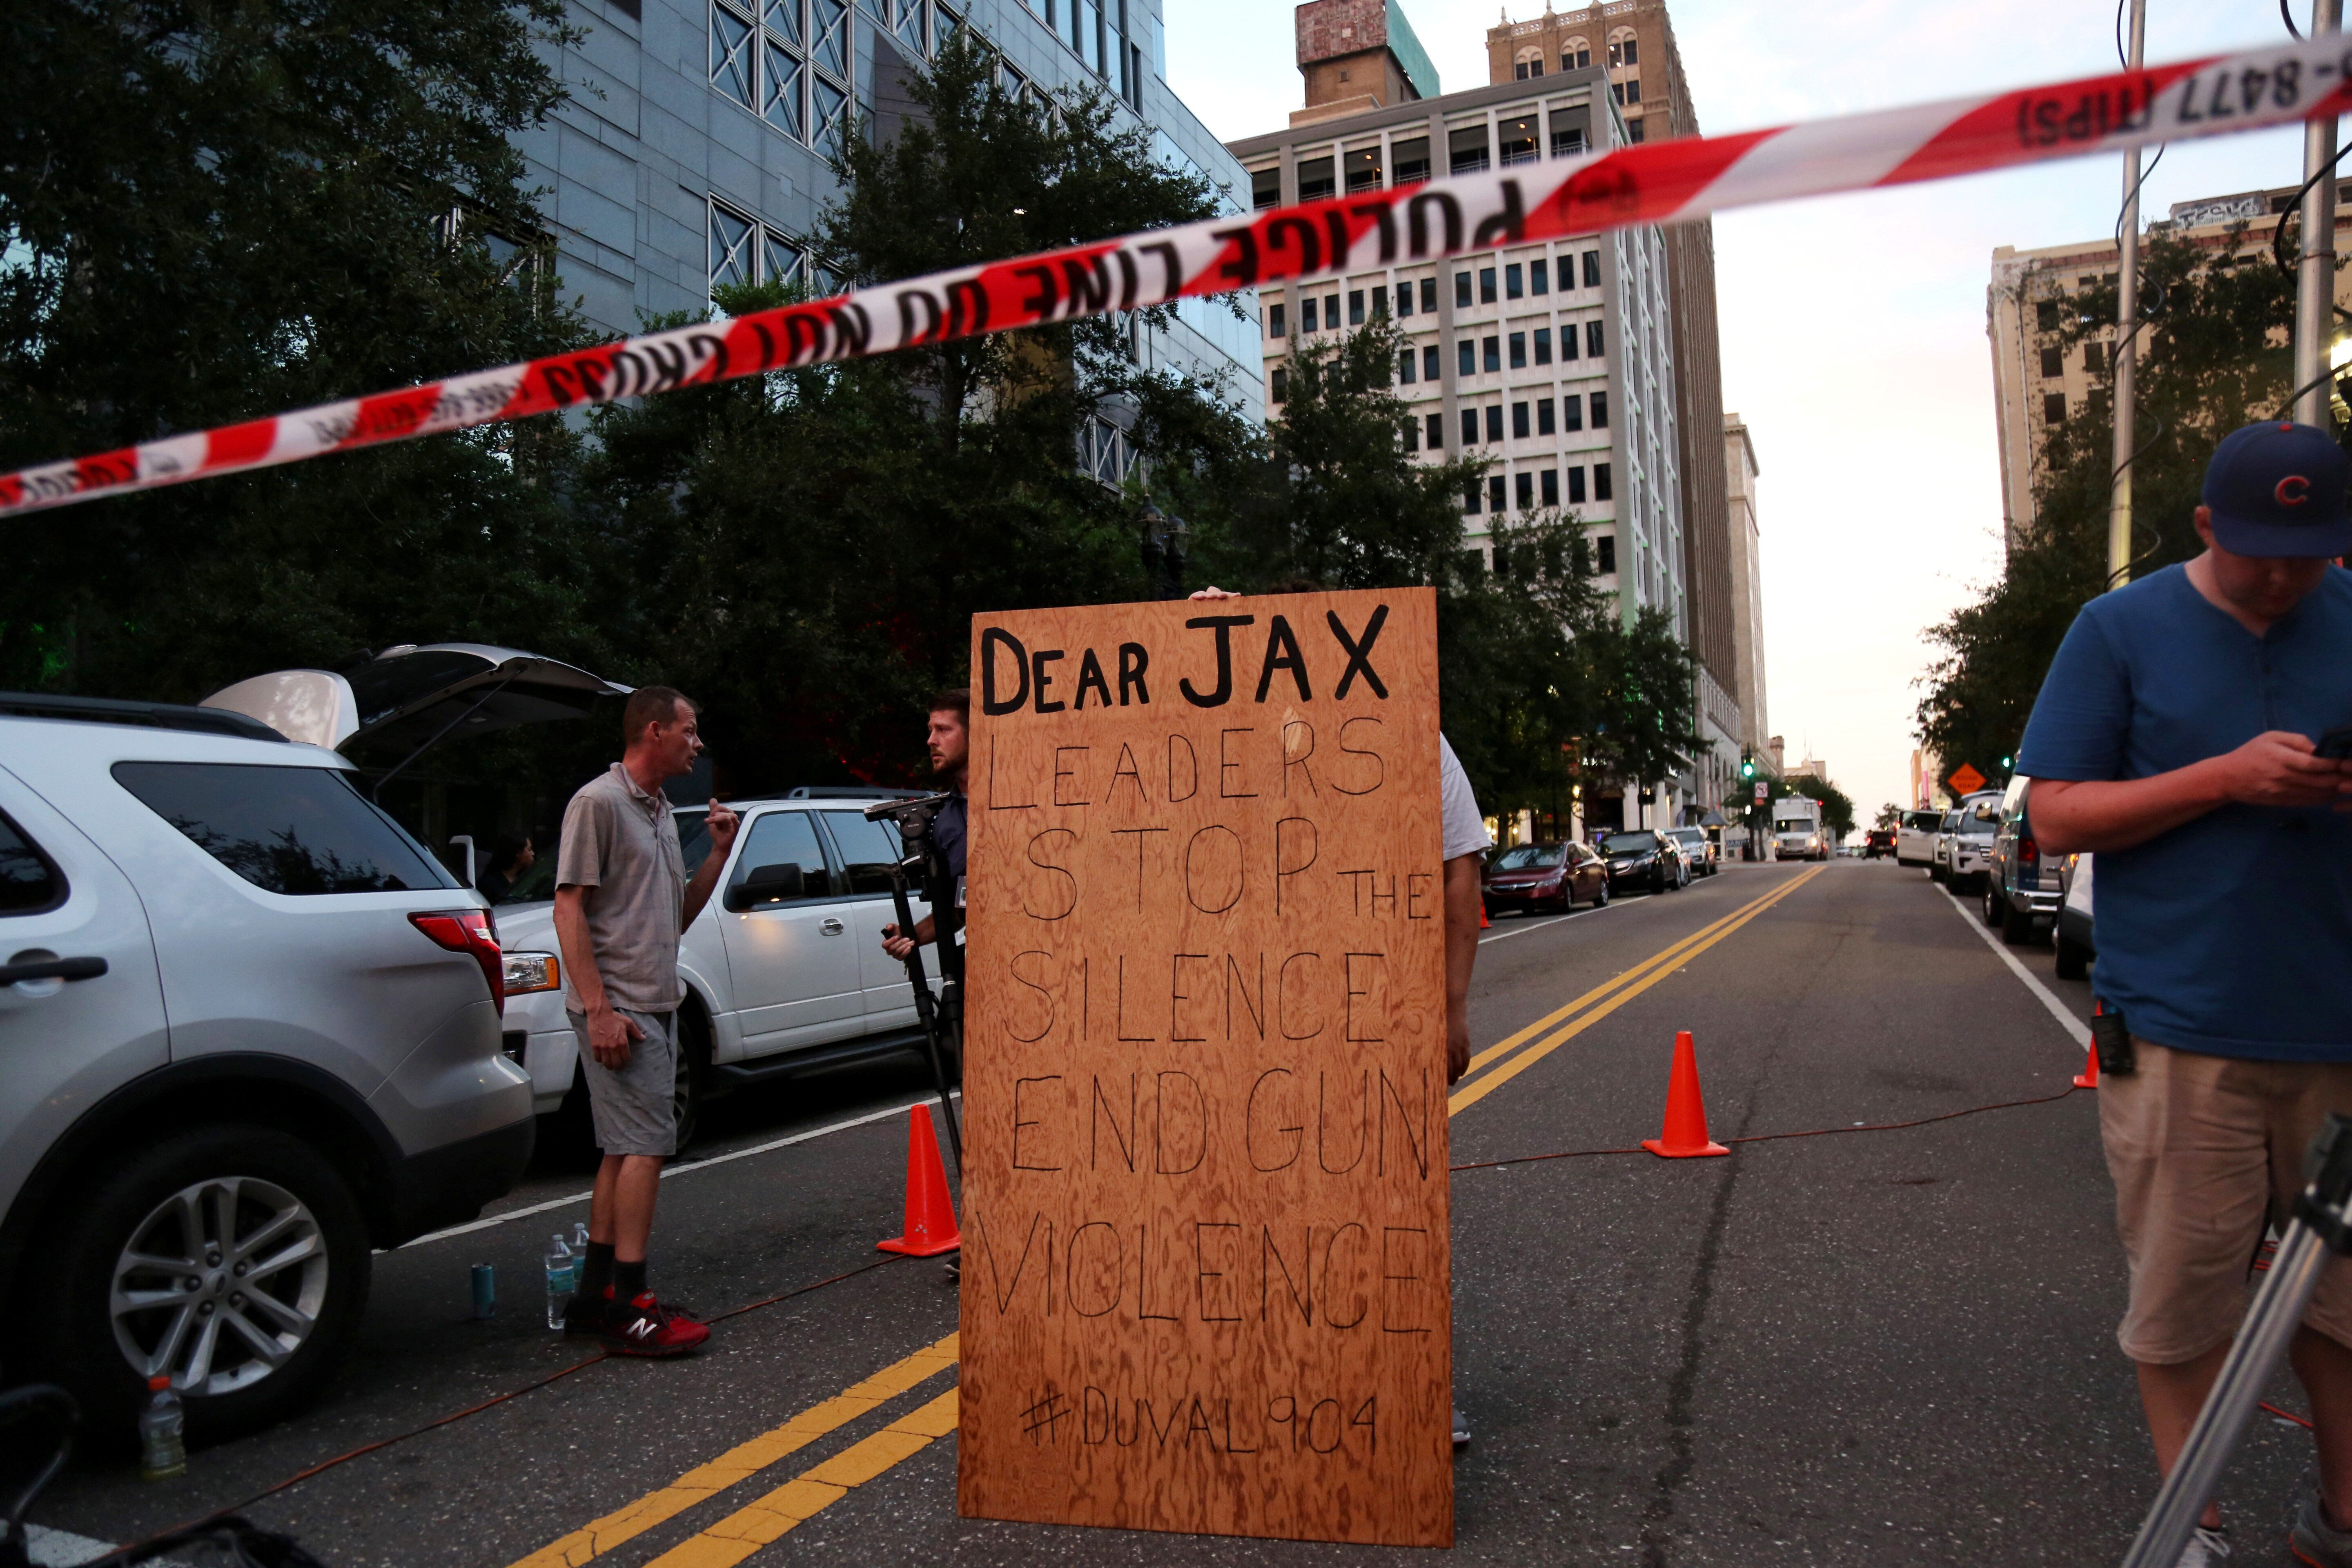 A man holds a sign in support of gun control outside of The Jacksonville Landing after a shooting in Jacksonville, Florida August 26, 2018.  REUTERS/Joey Roulette